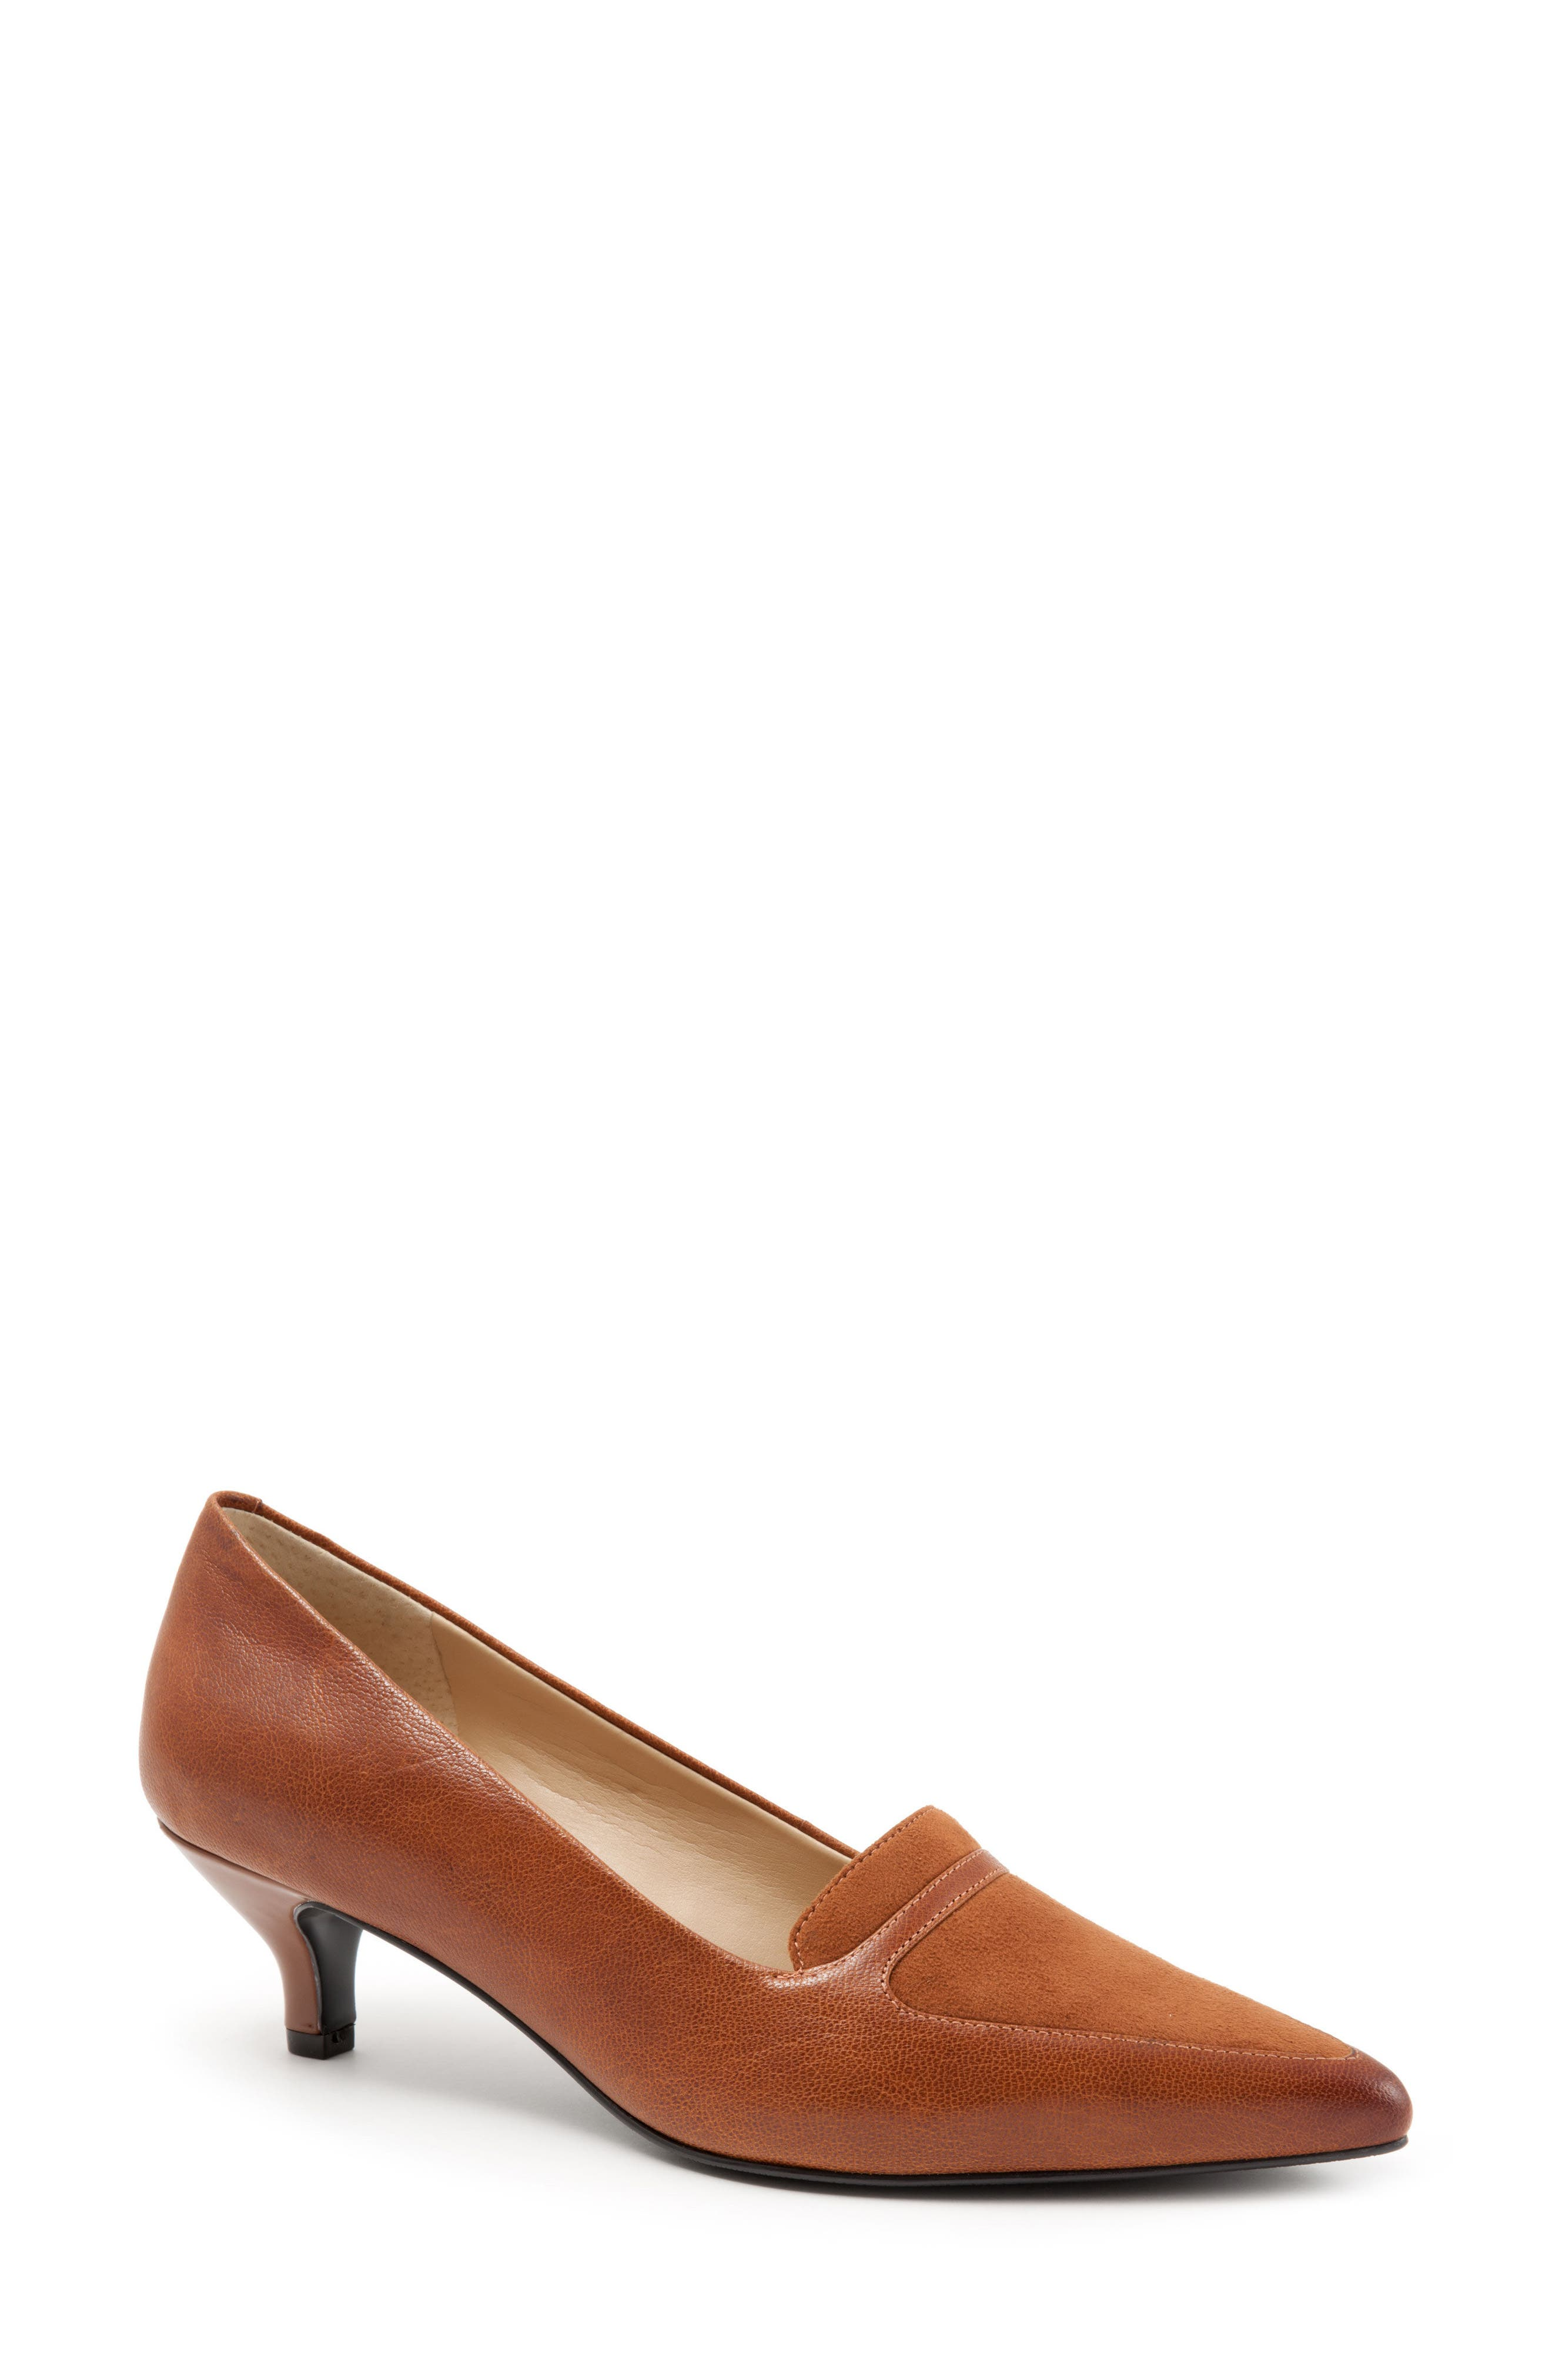 'Piper' Pointy Toe Pump,                         Main,                         color, Luggage Leather